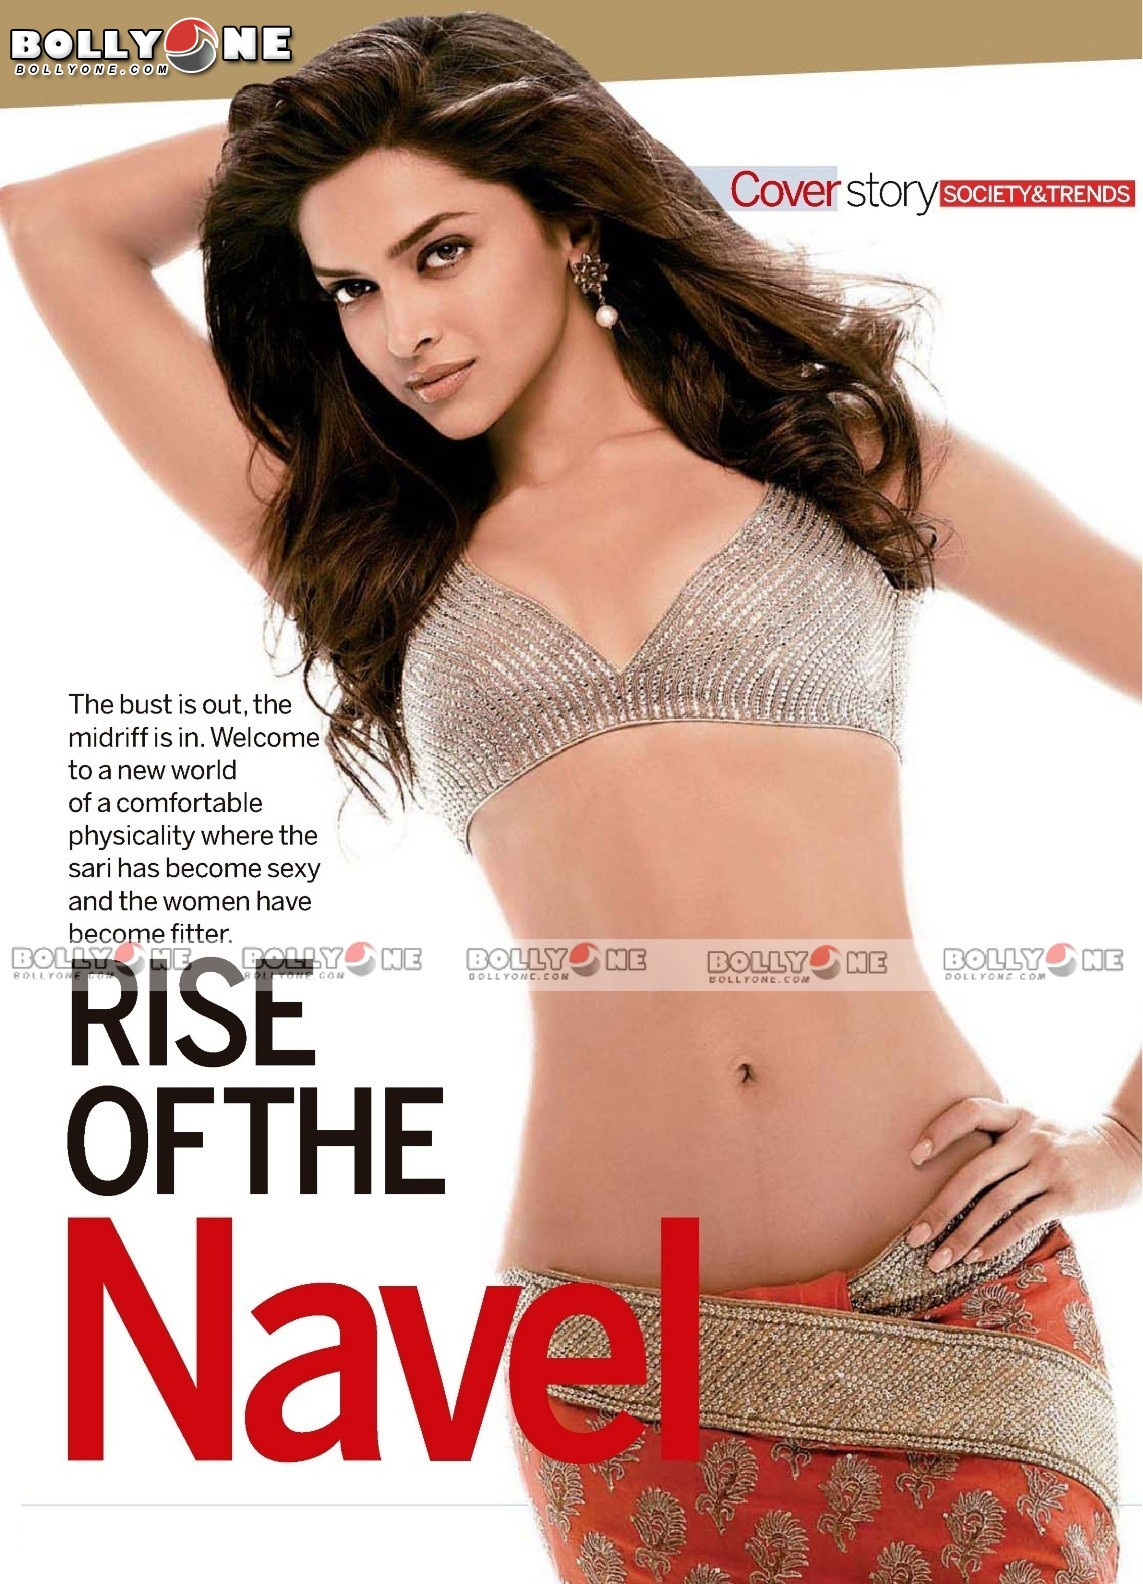 Looking Stunning With Her Hot Rise Of The Navel She Has Given A Super Hot Photoshoot For The India Today Magazine And This Is The Unseen Photo For U